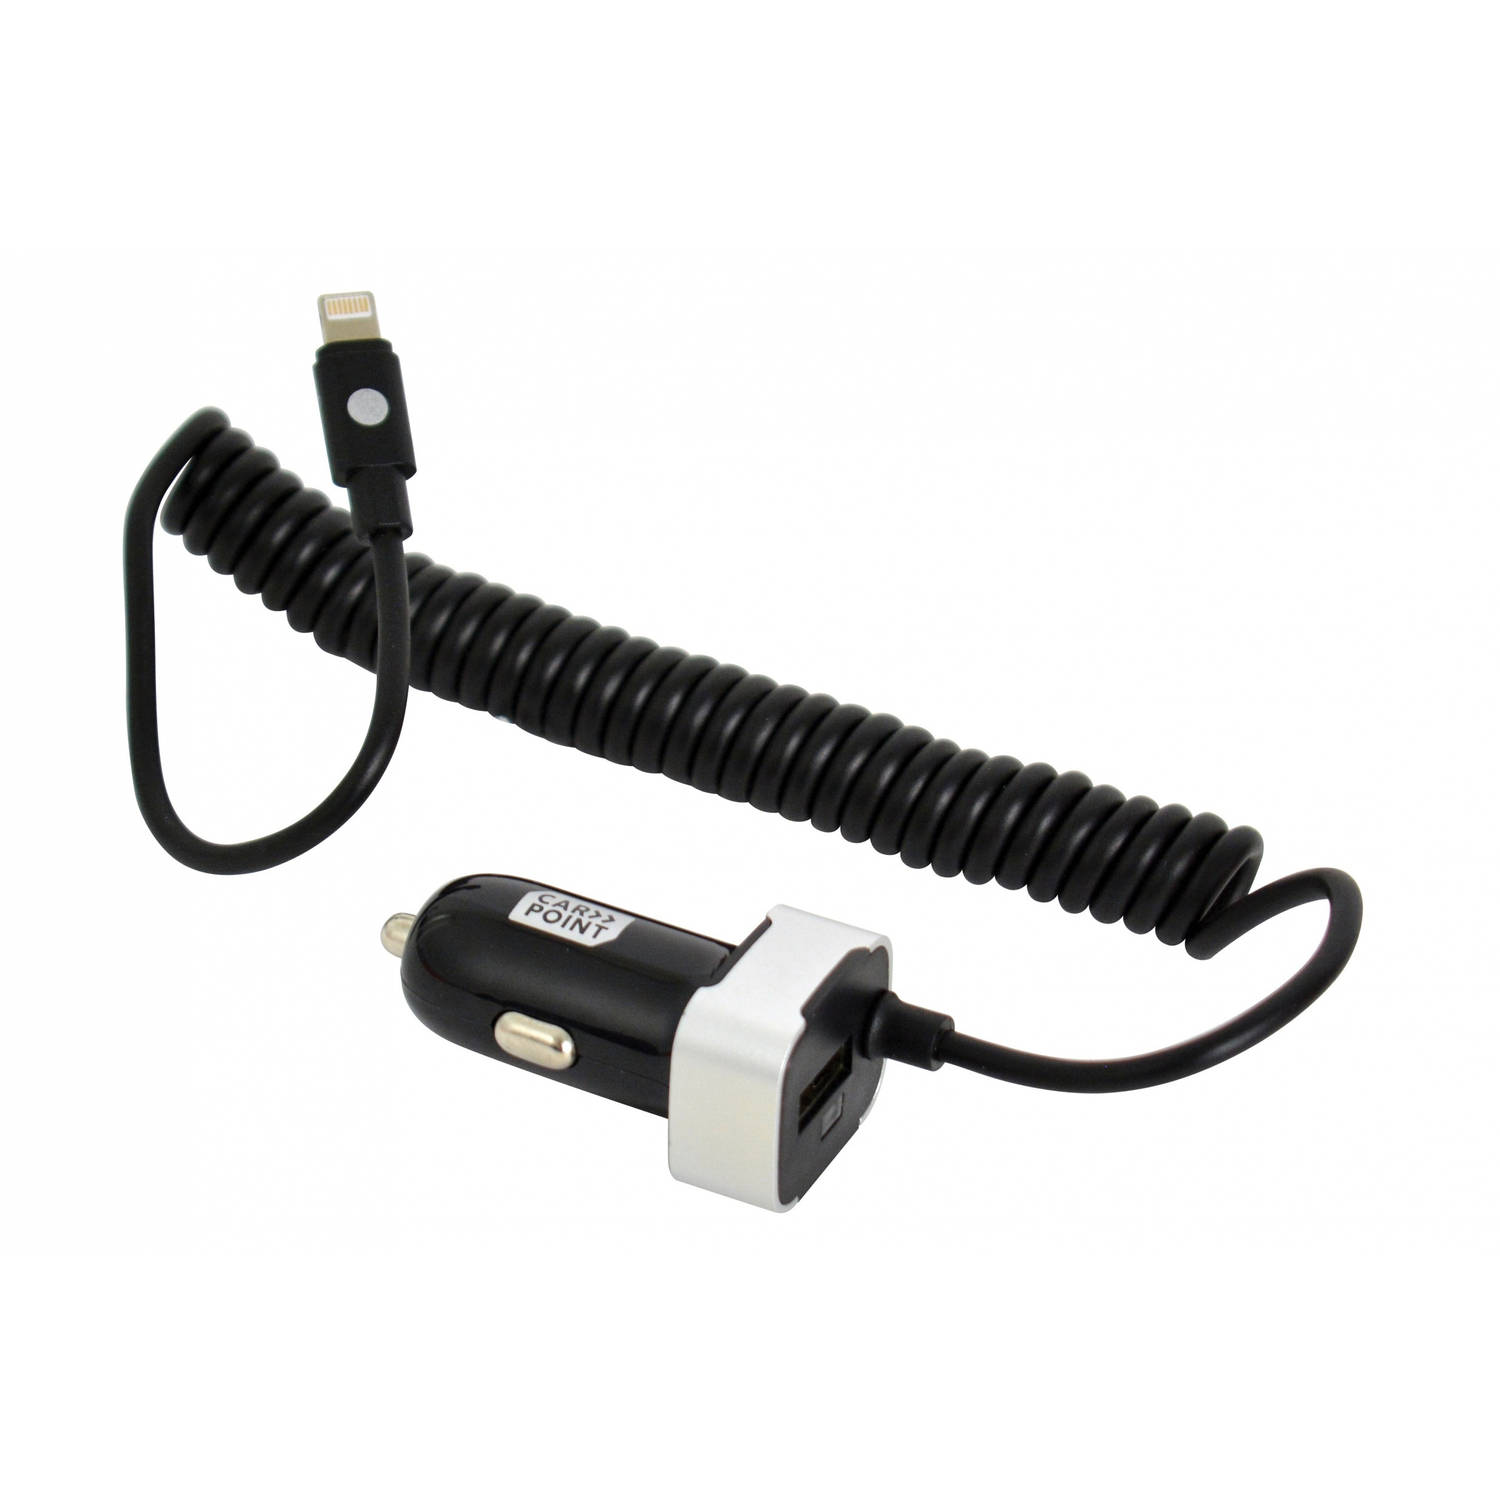 Carpoint Autolader 12V / 24V single USB 2.4A